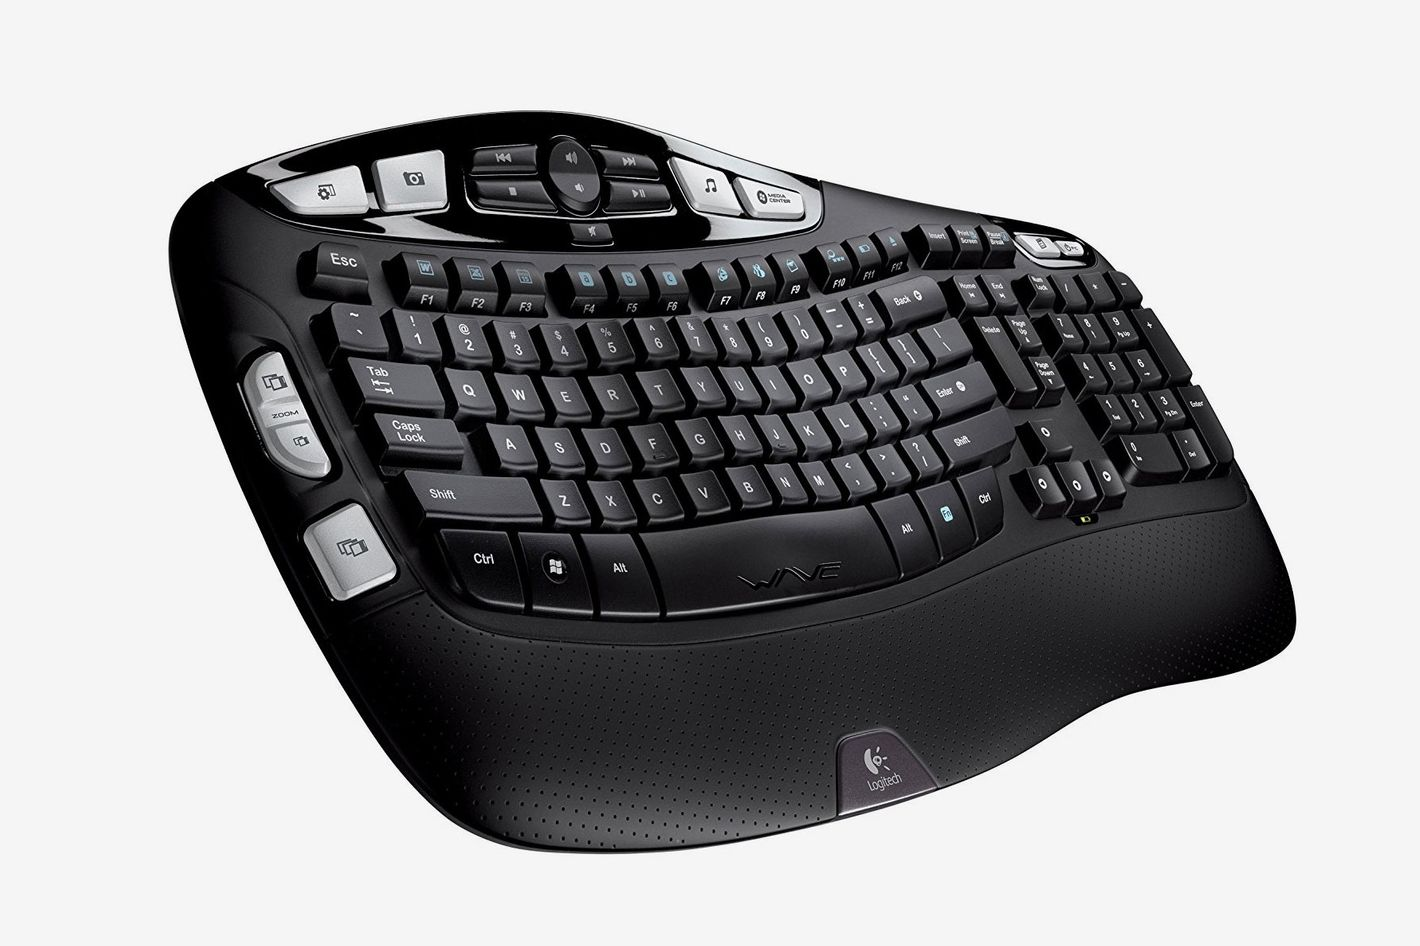 657ee9264f0 11 Best Wireless and Bluetooth Keyboards 2019